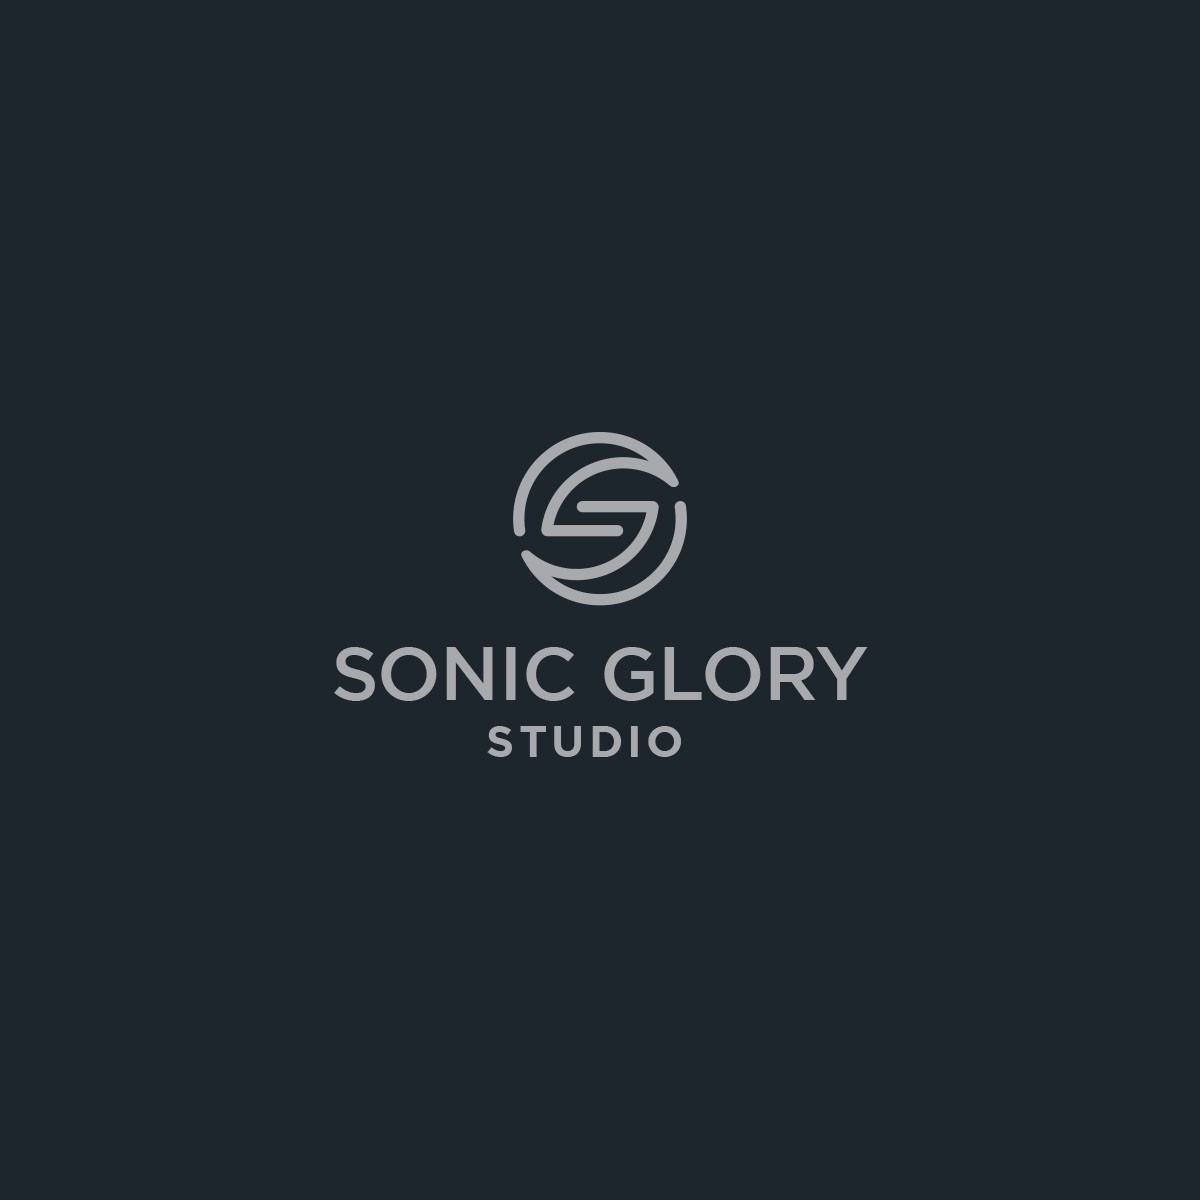 Need an attention grabbing logo for our recording studio